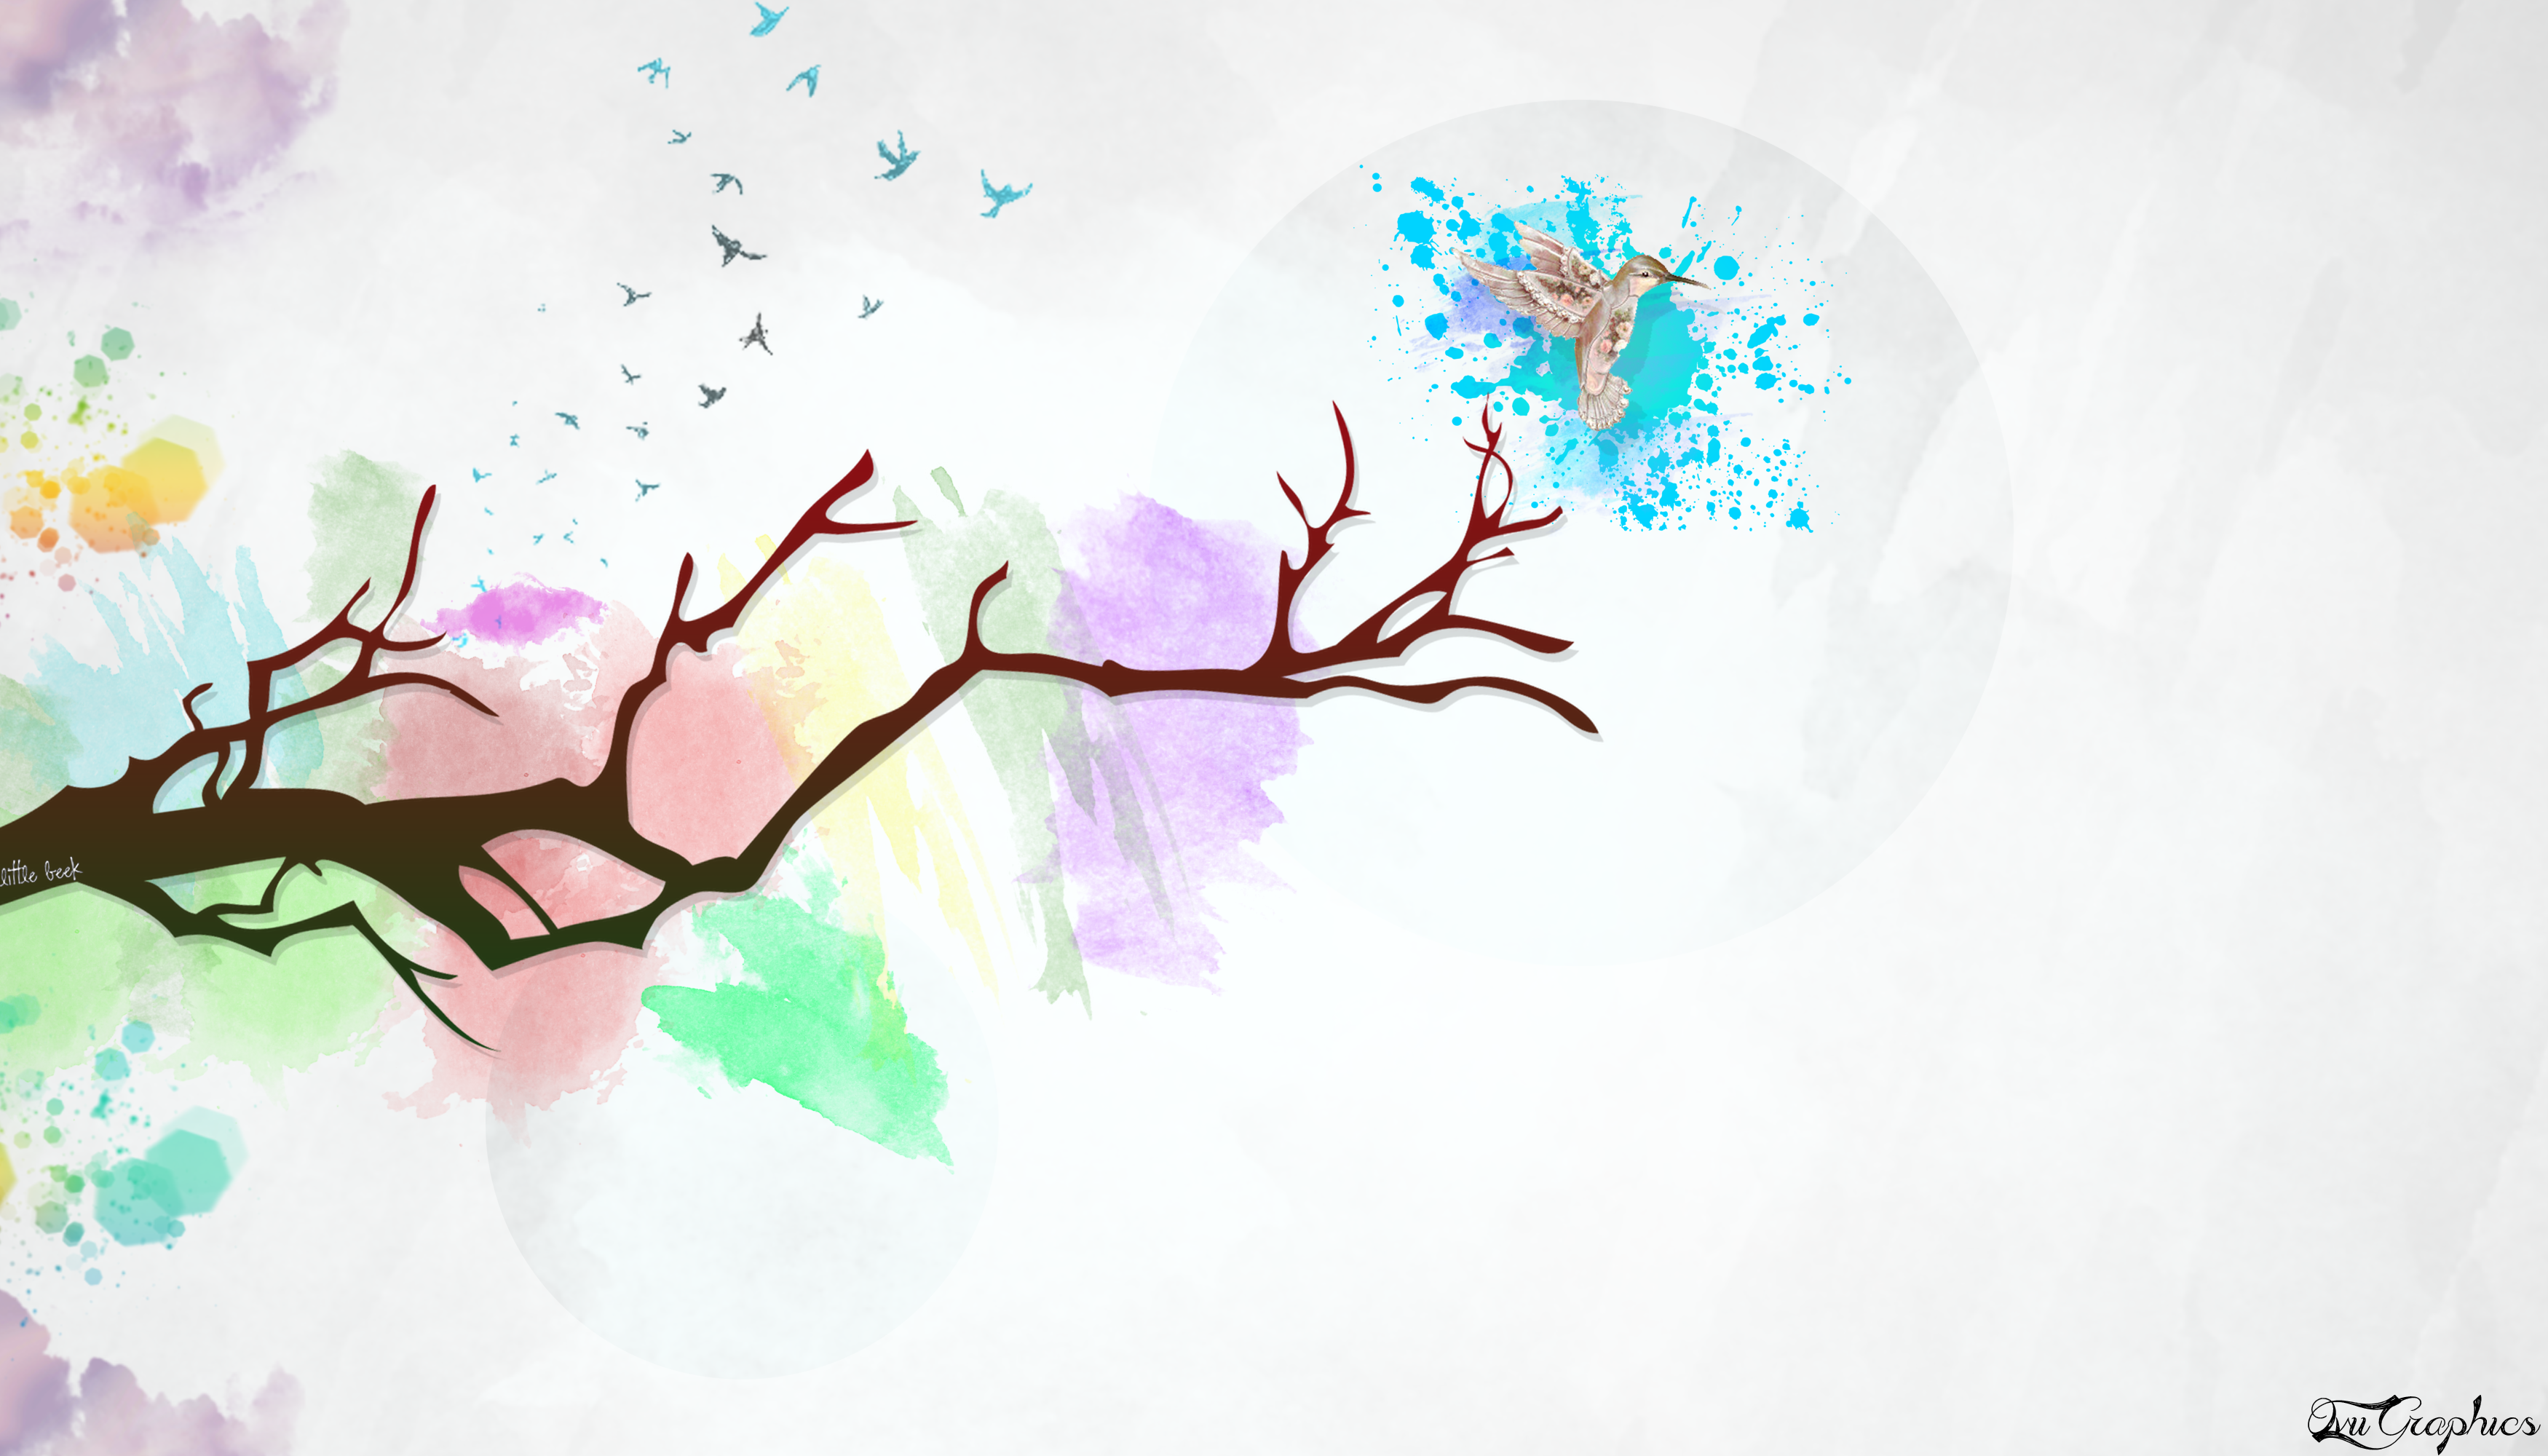 abstract creativity wallpaper hd colorss by ovii graphics on deviantart